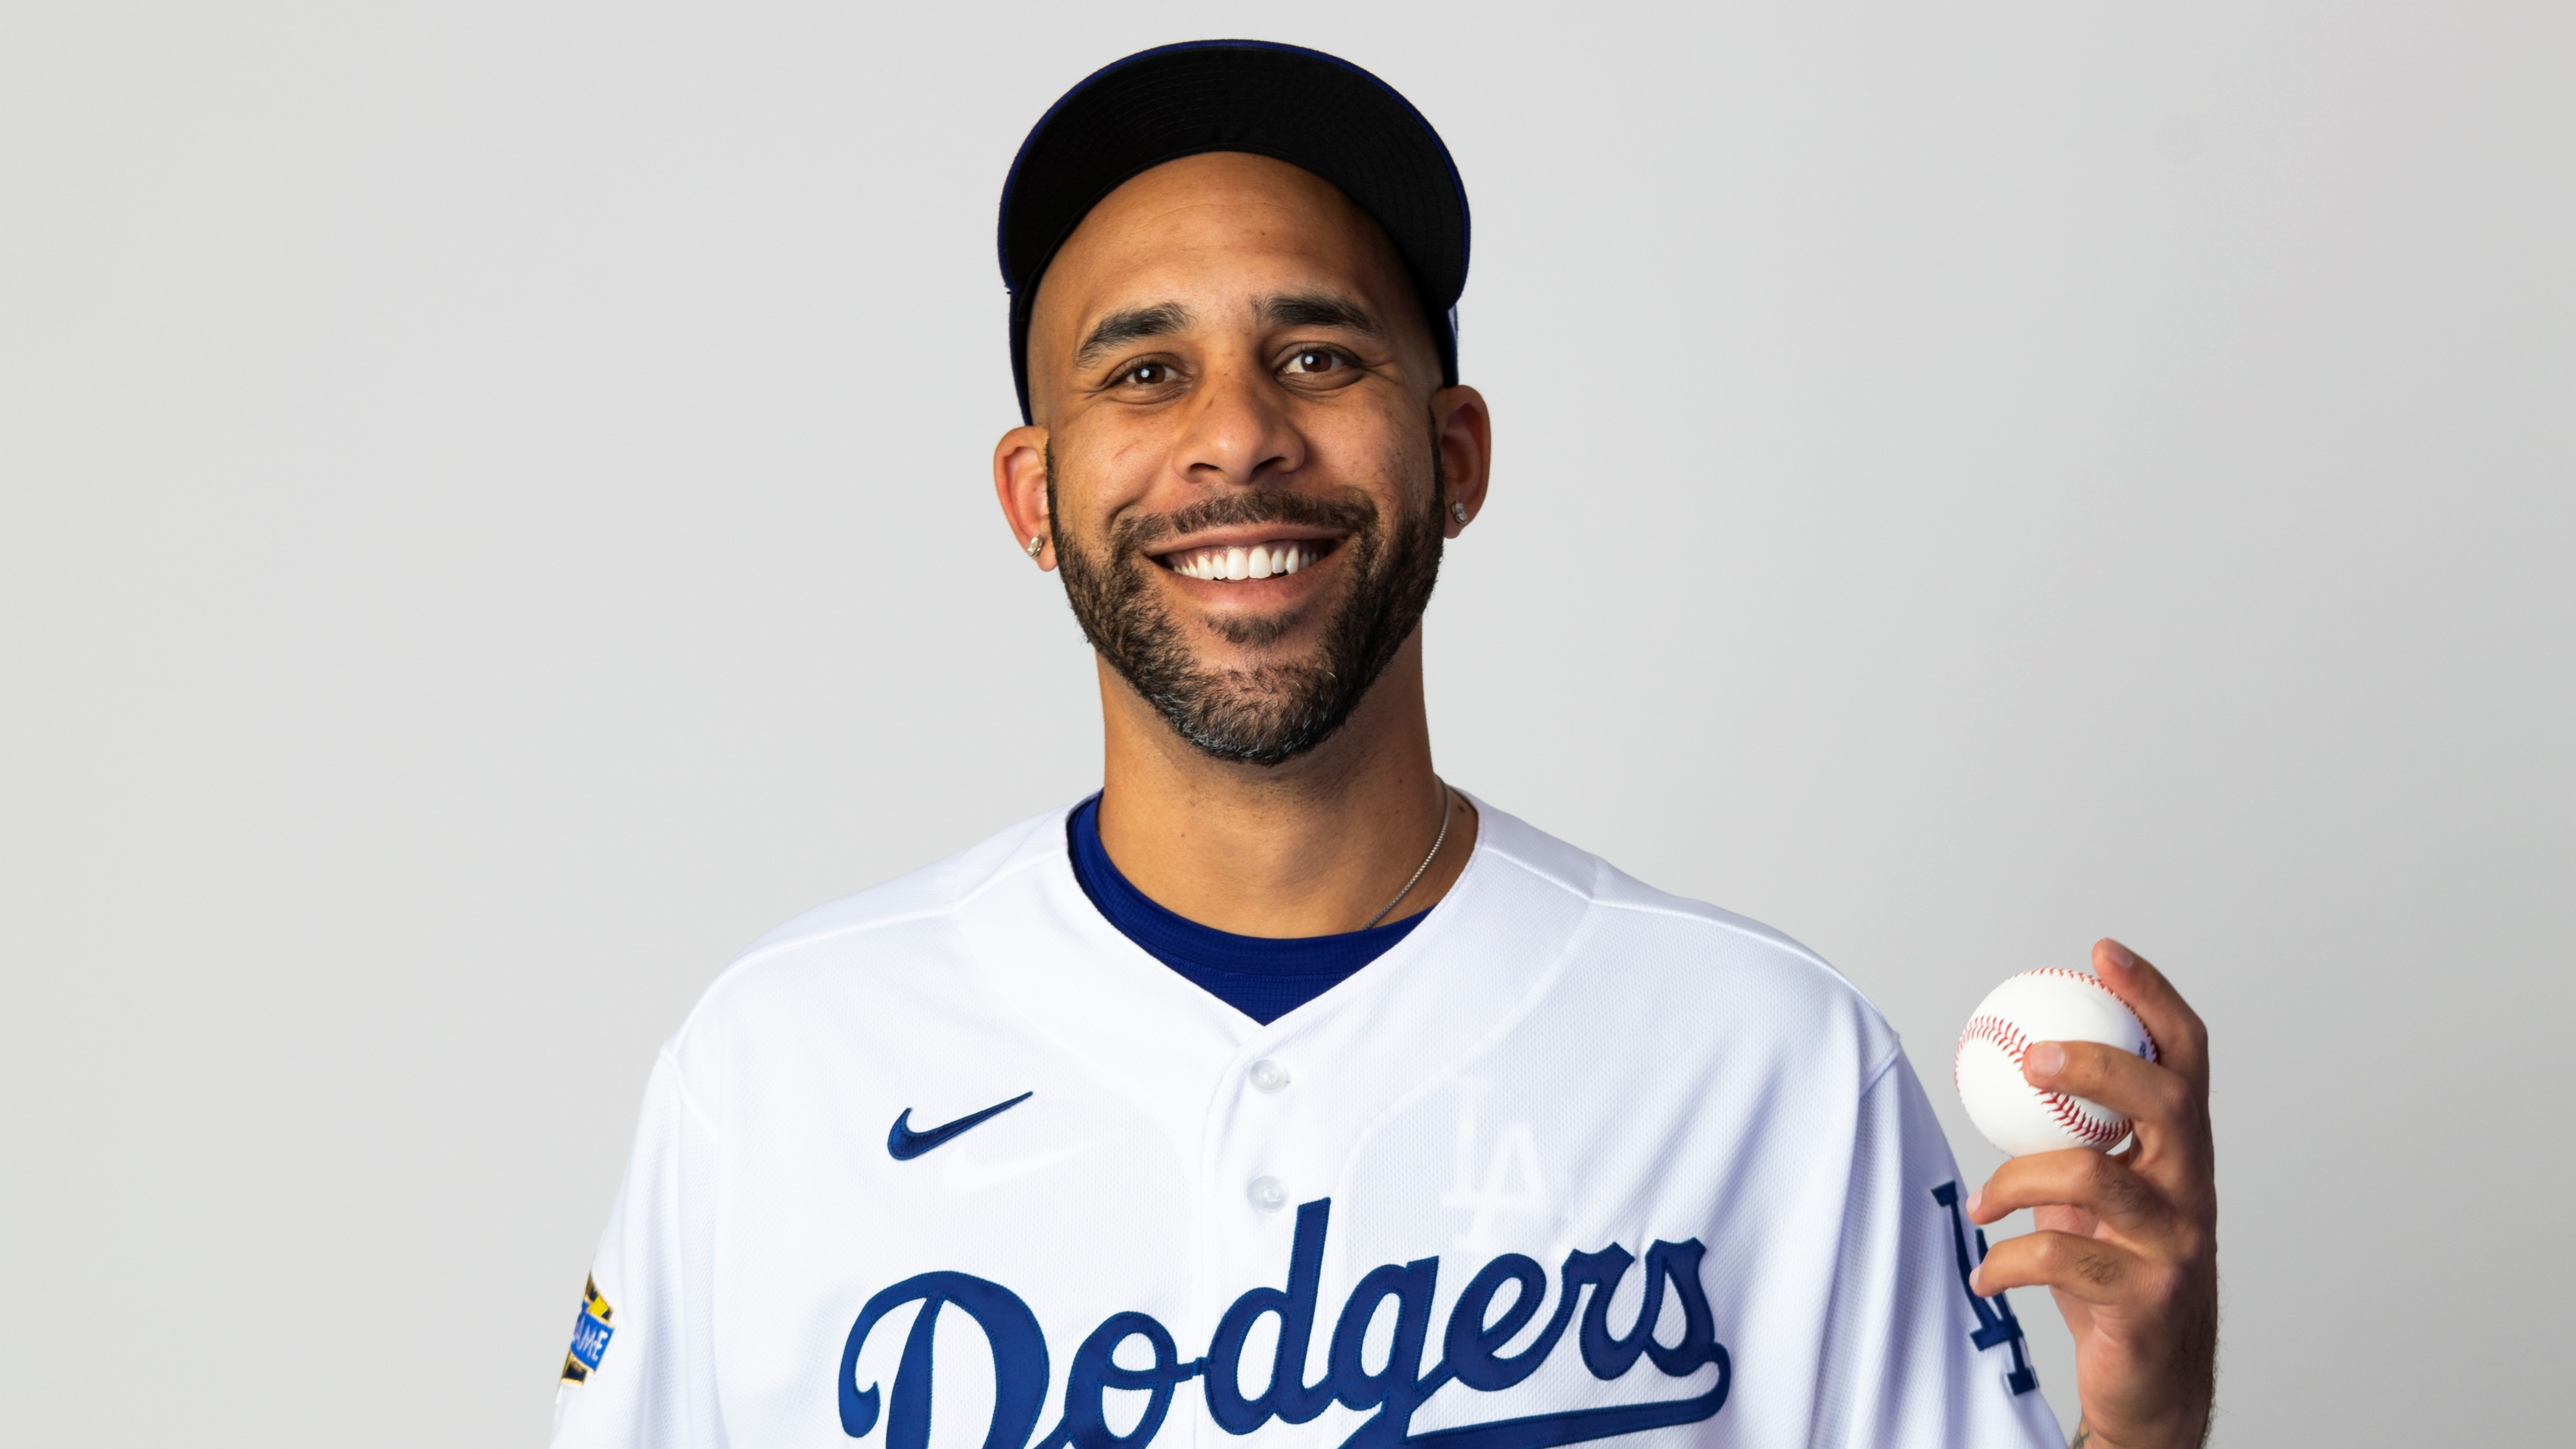 Two Cy Young Award winners decide not to attend 2020 MLB season